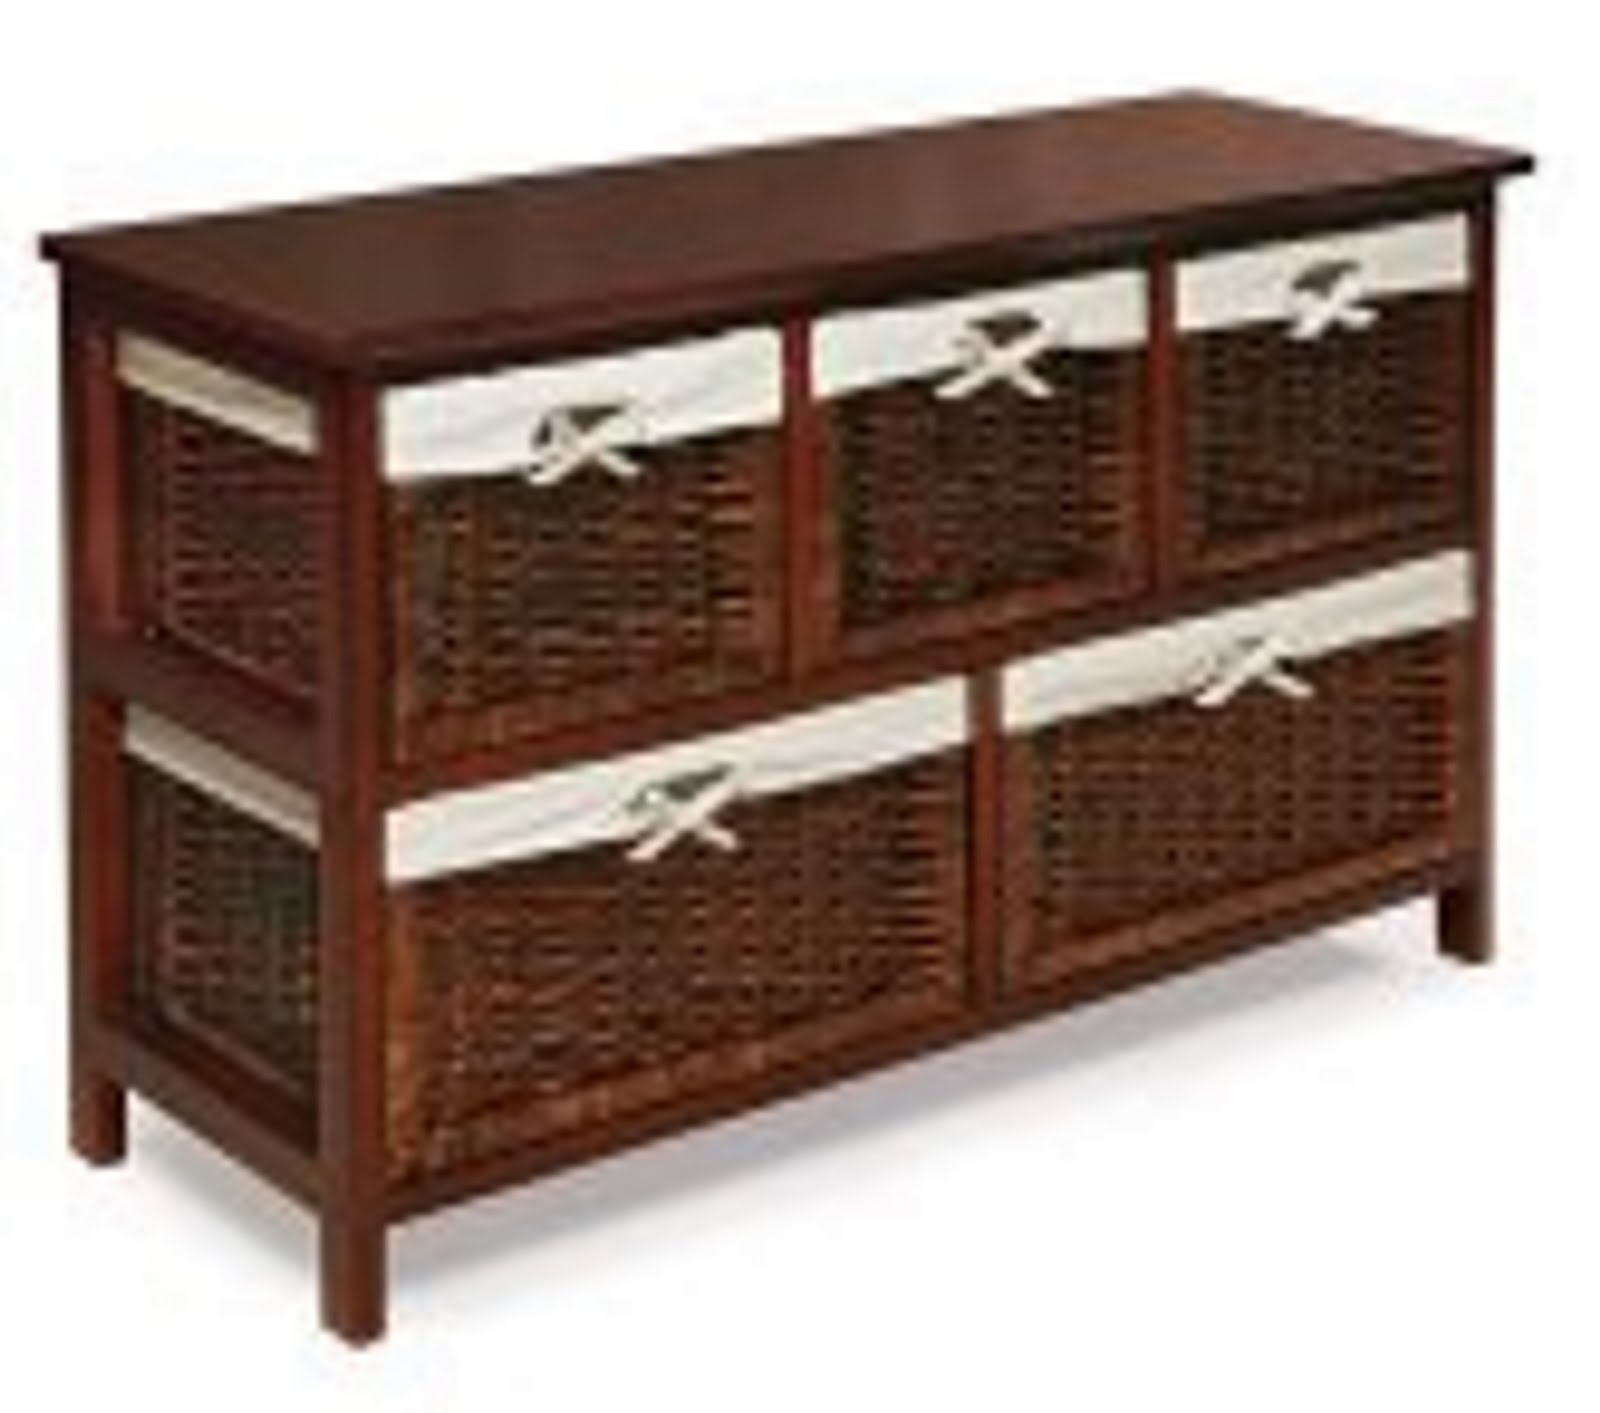 Storage Unit with Wicker Baskets